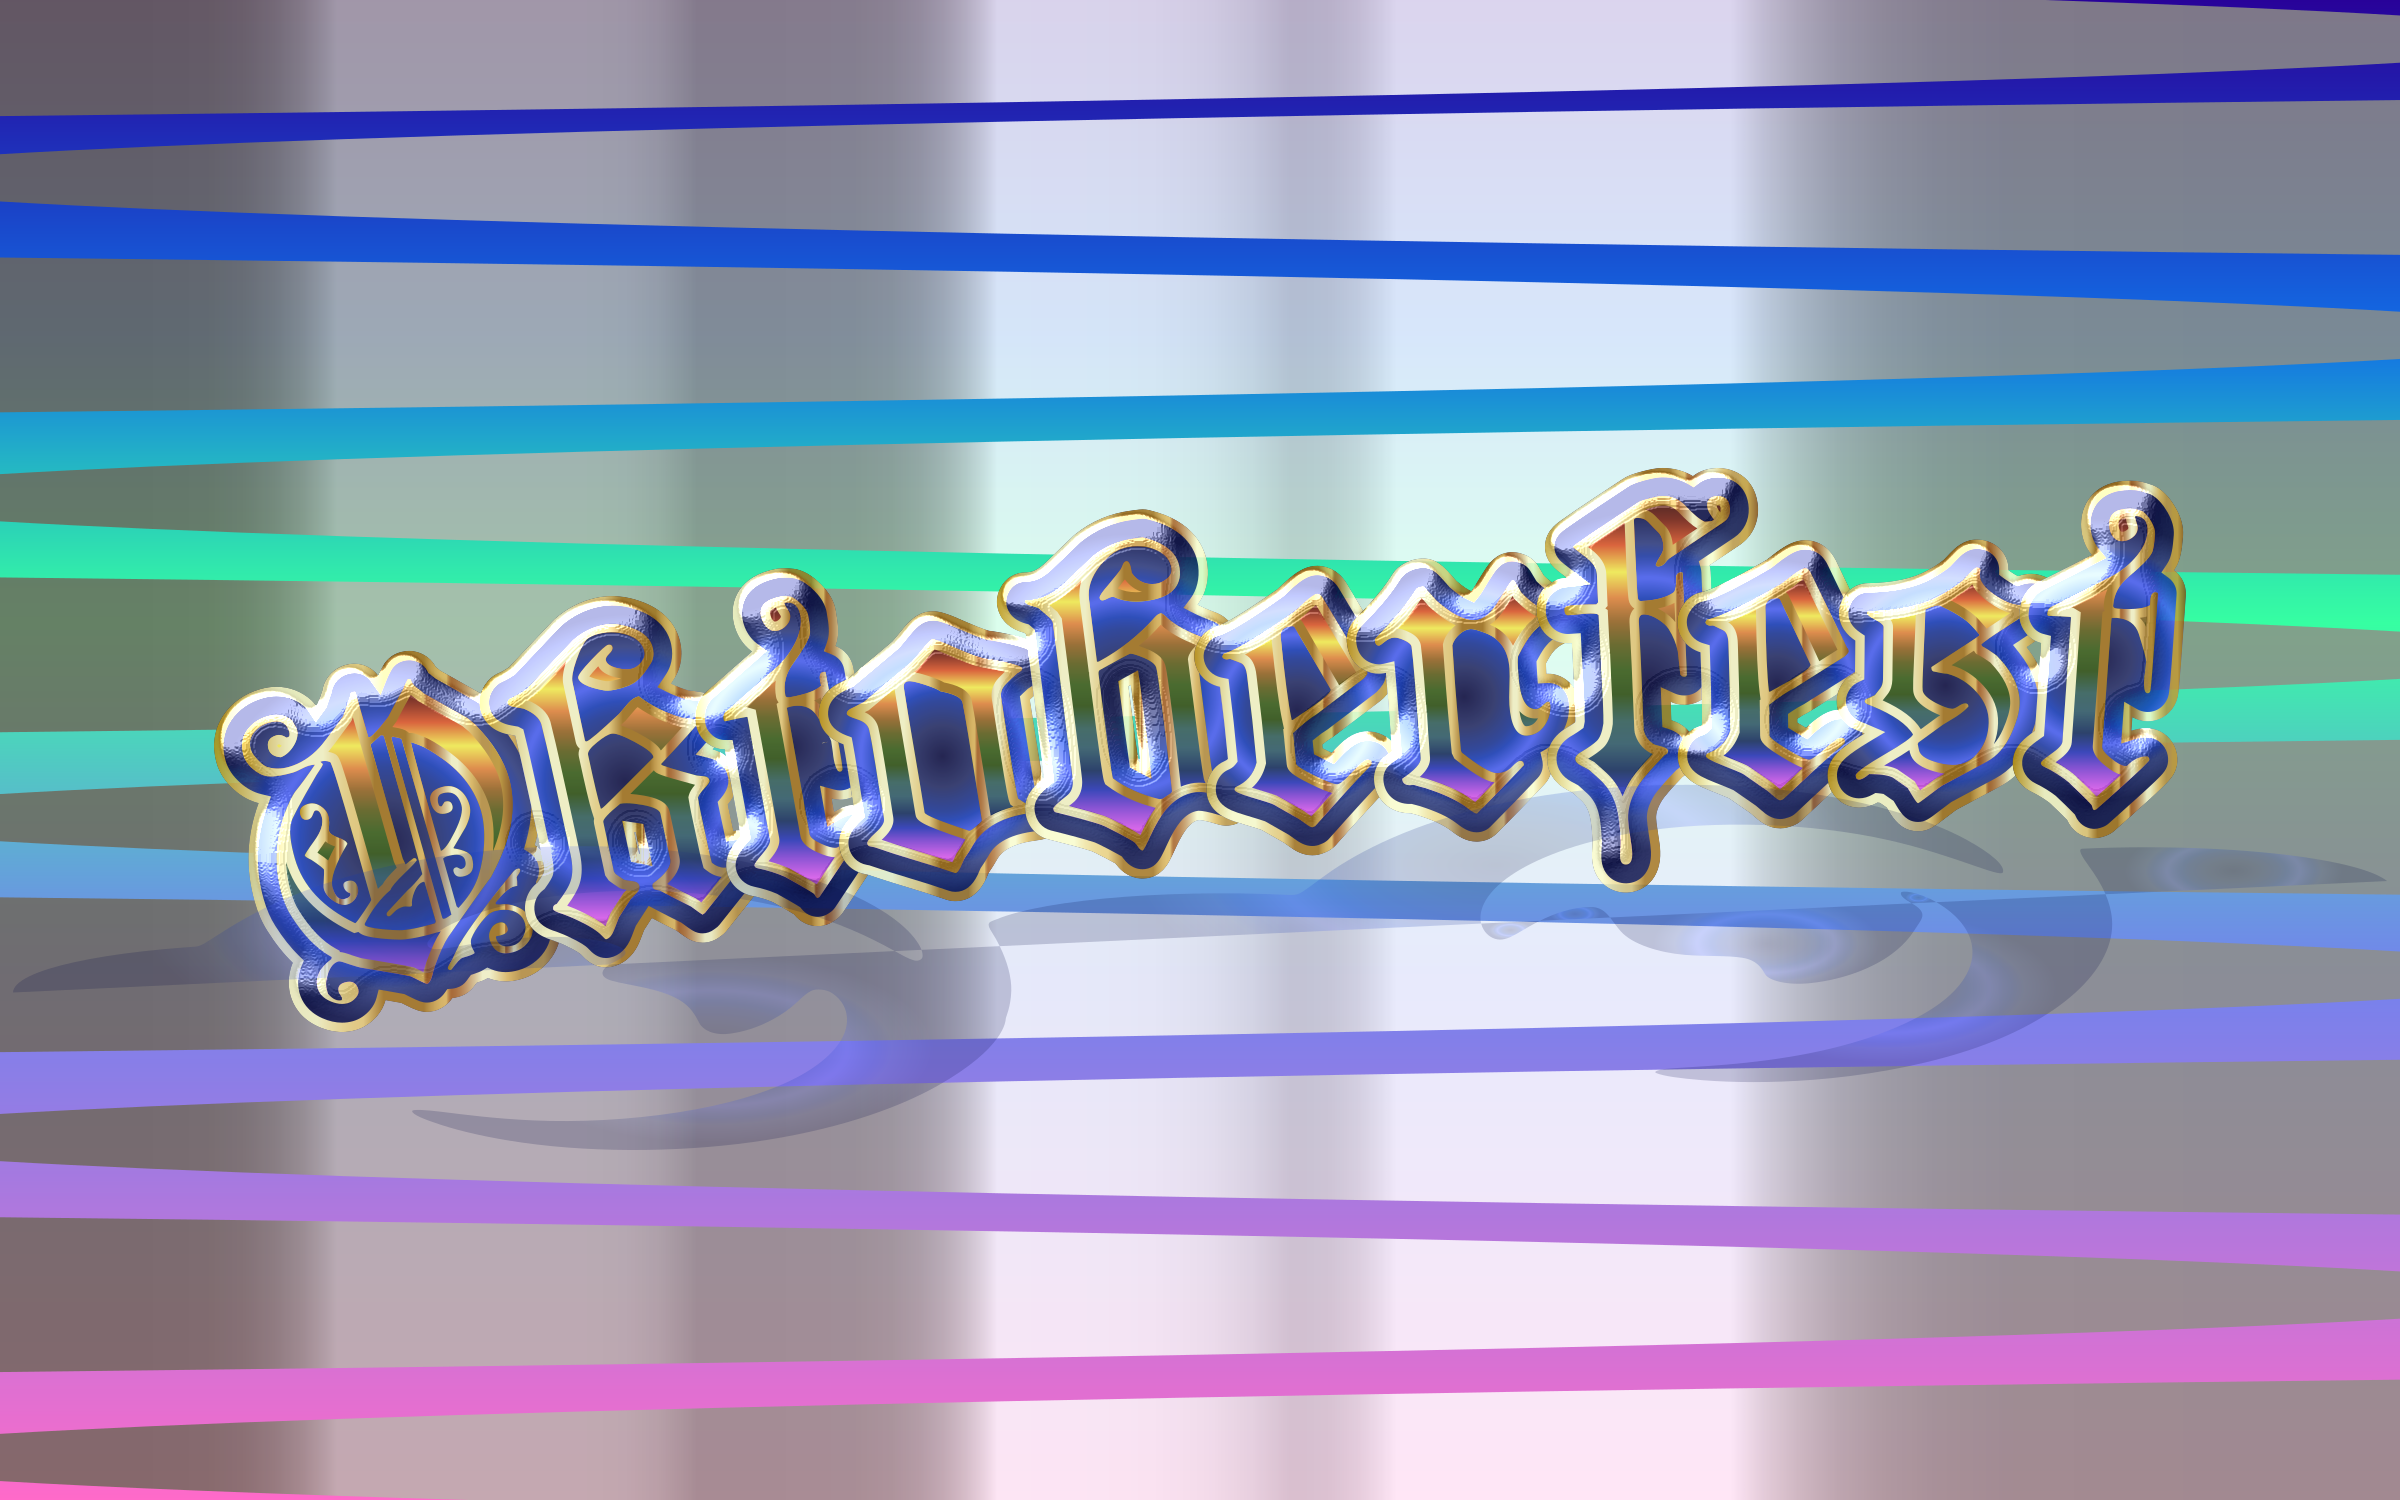 Oktoberfest Typography Shiny by GDJ